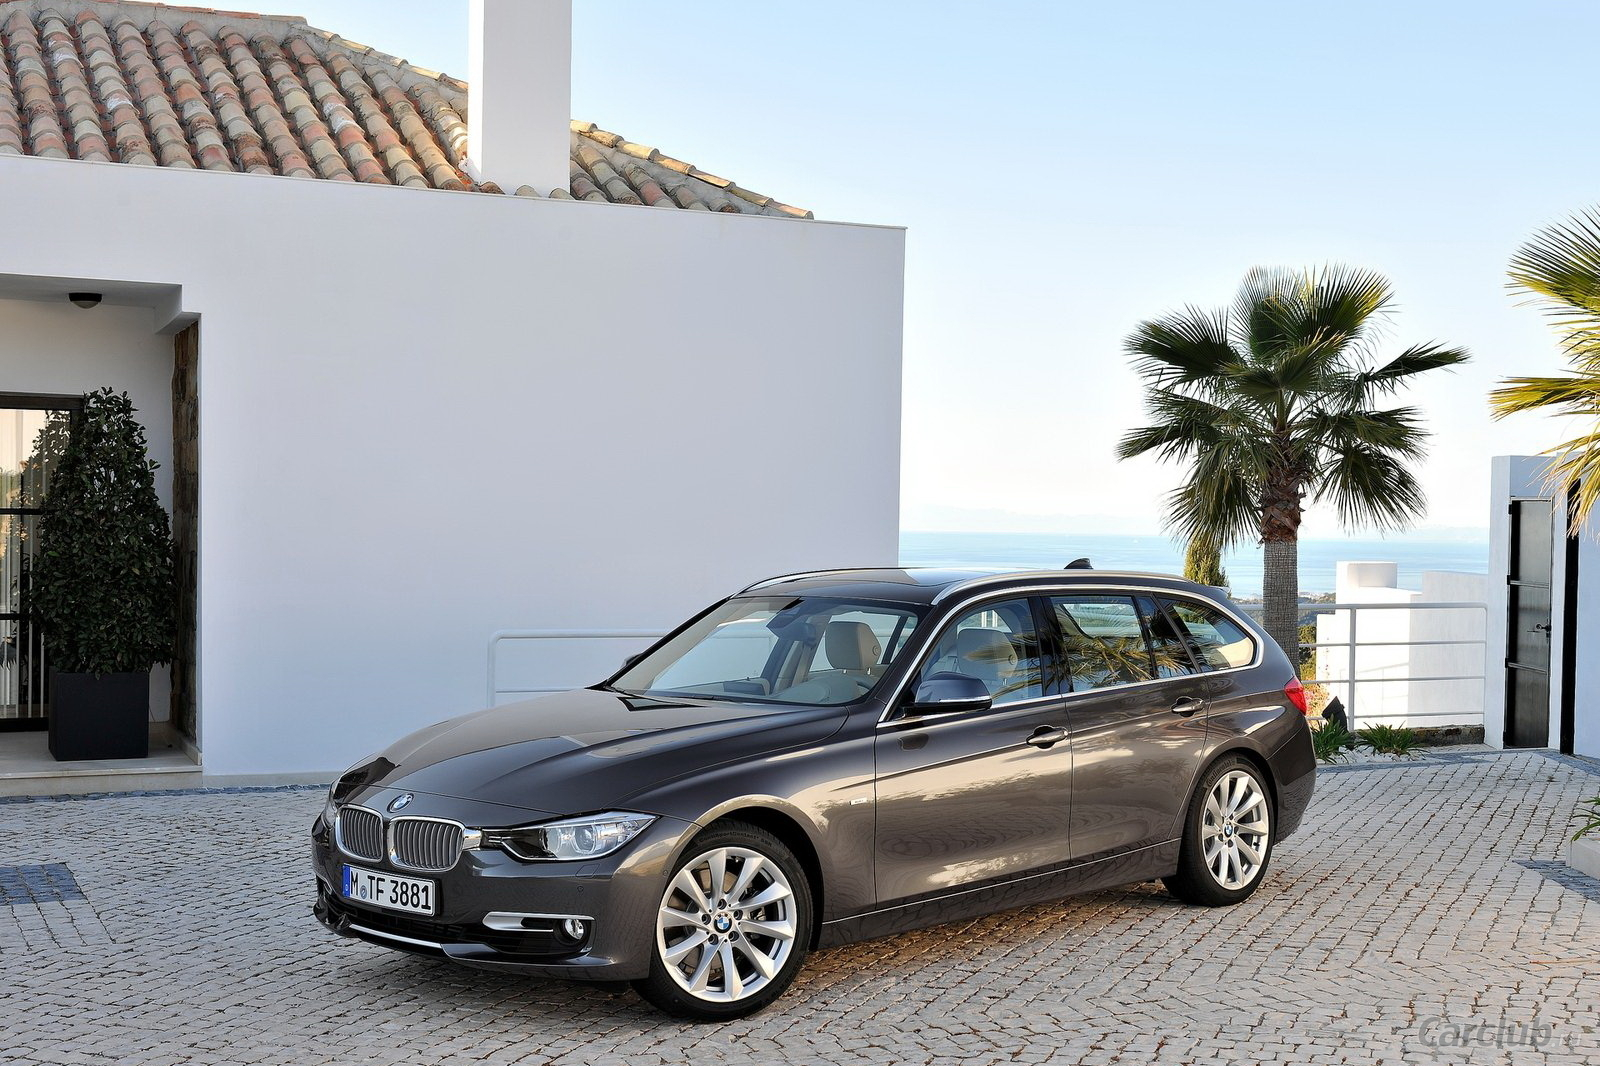 BMW 3 series 325d 2013 photo - 10